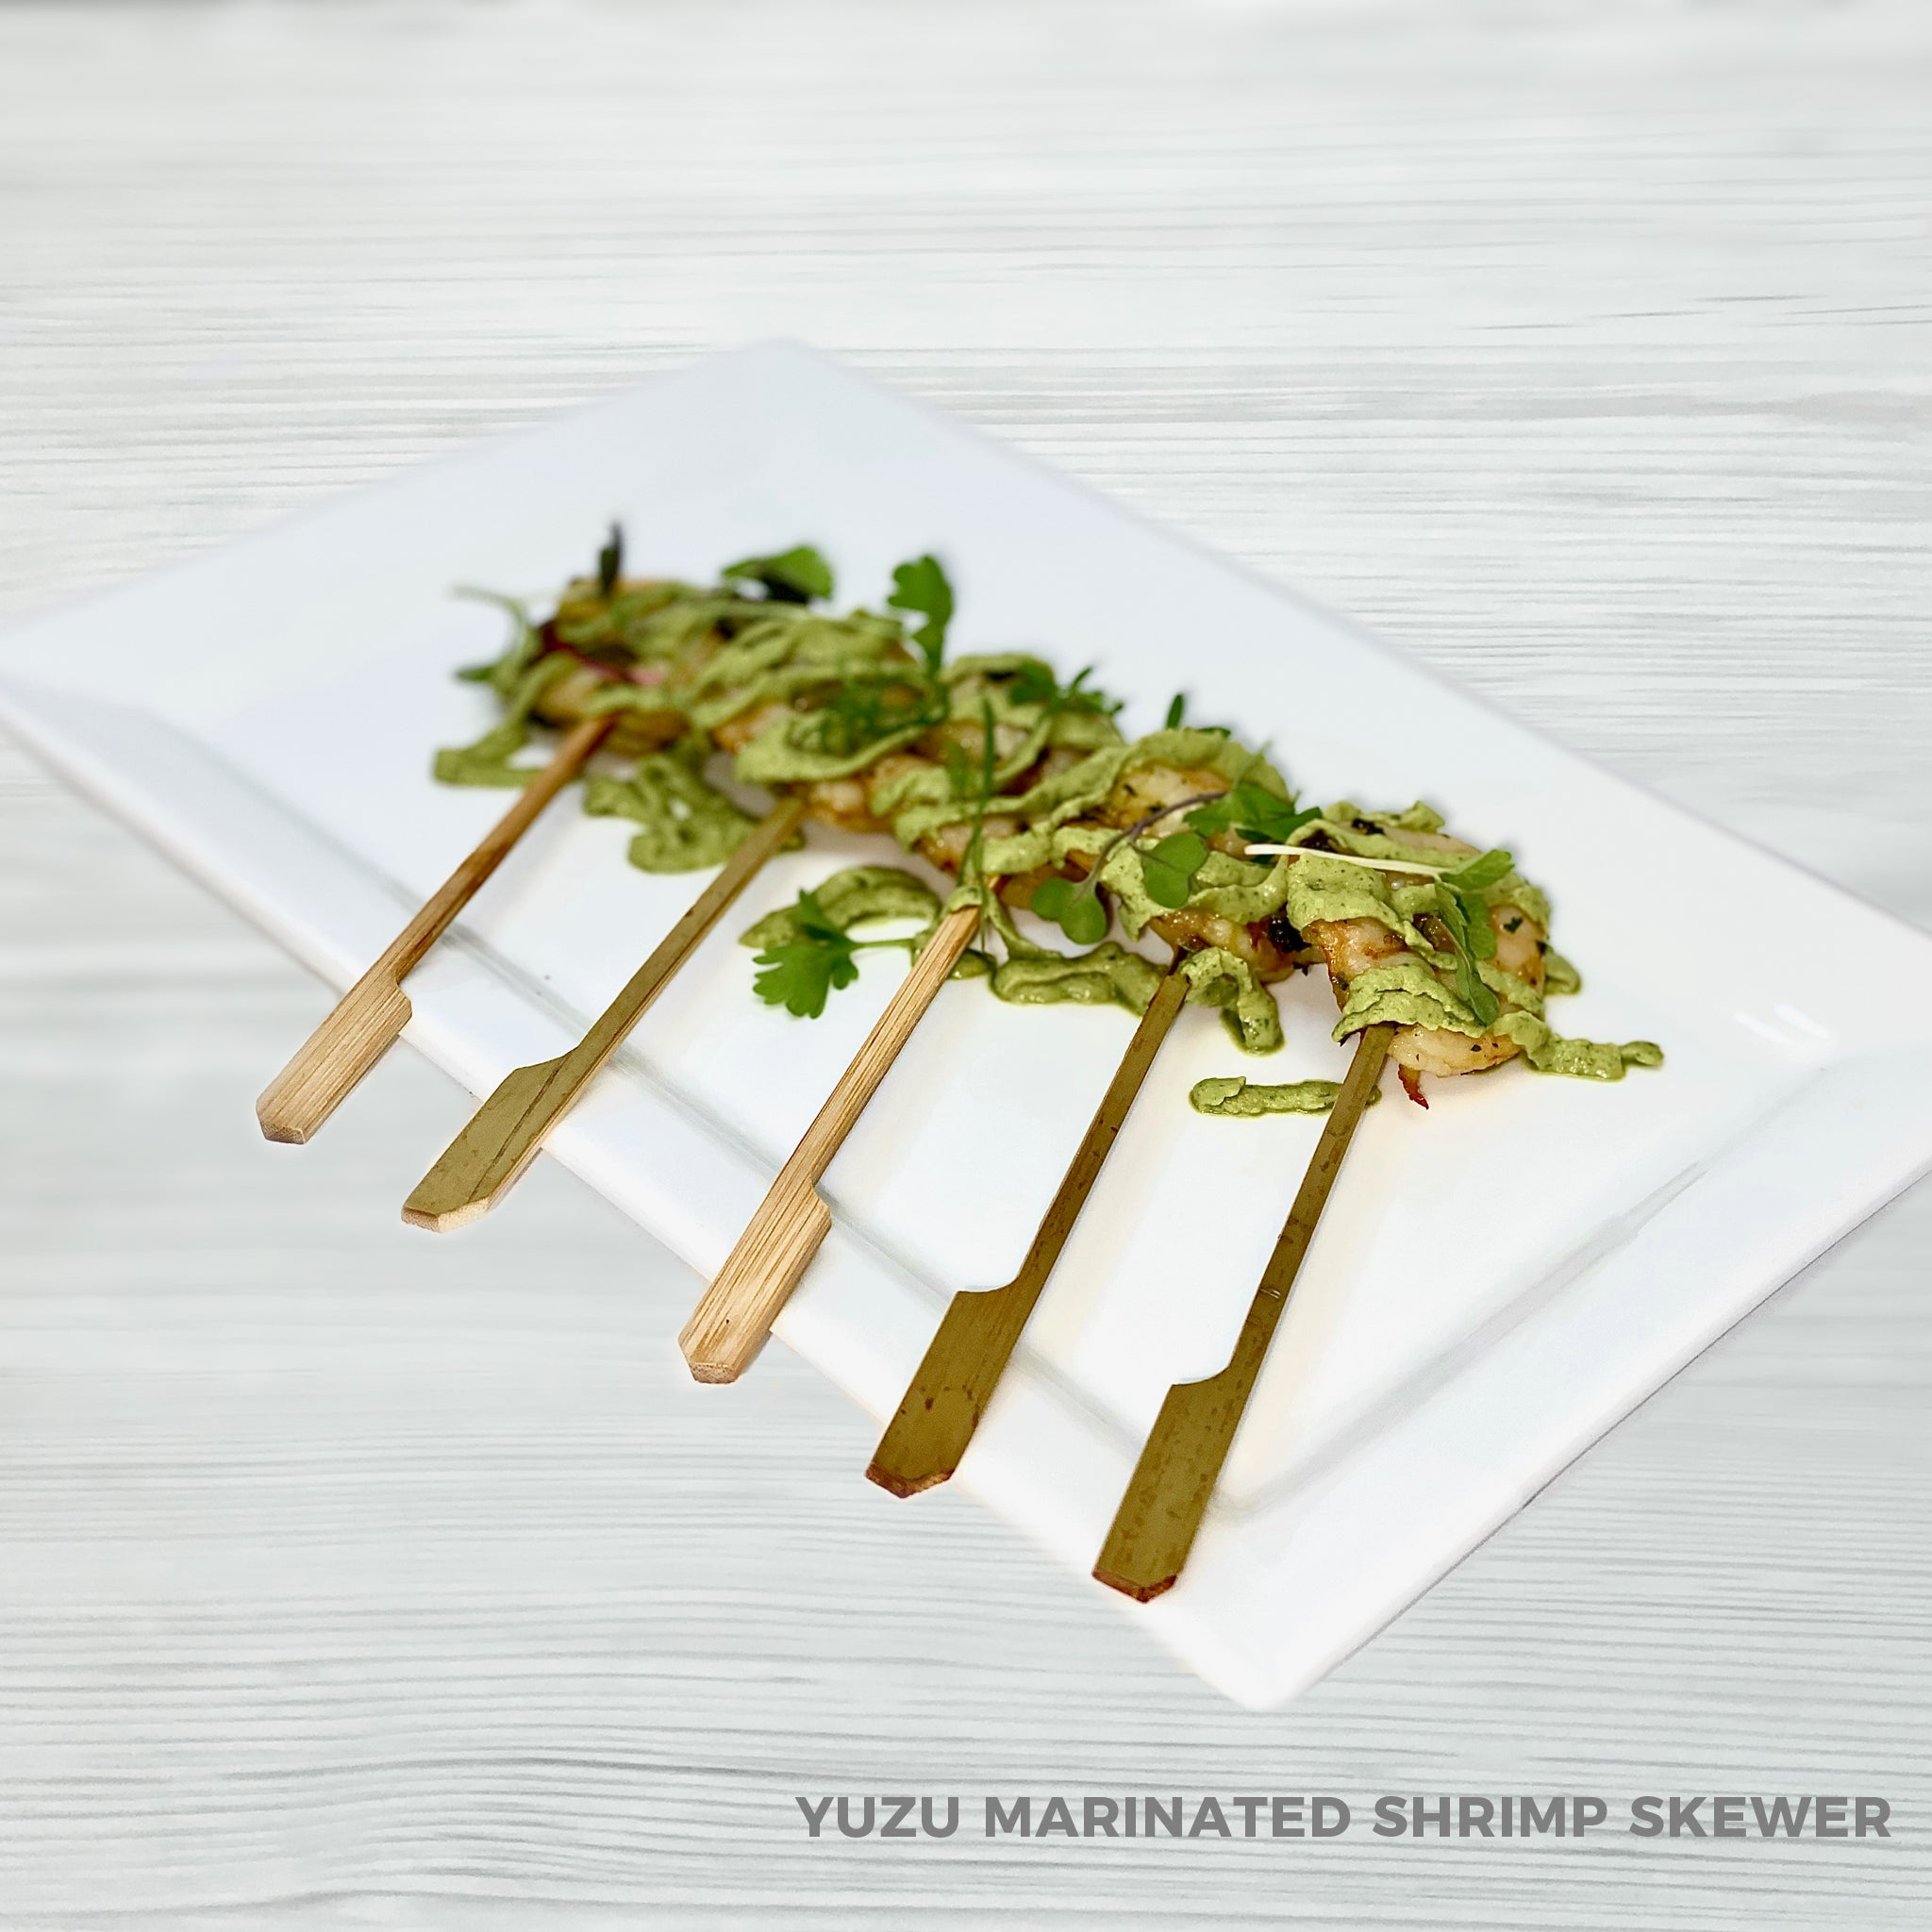 Yuzu Marinated Shrimp Skewers